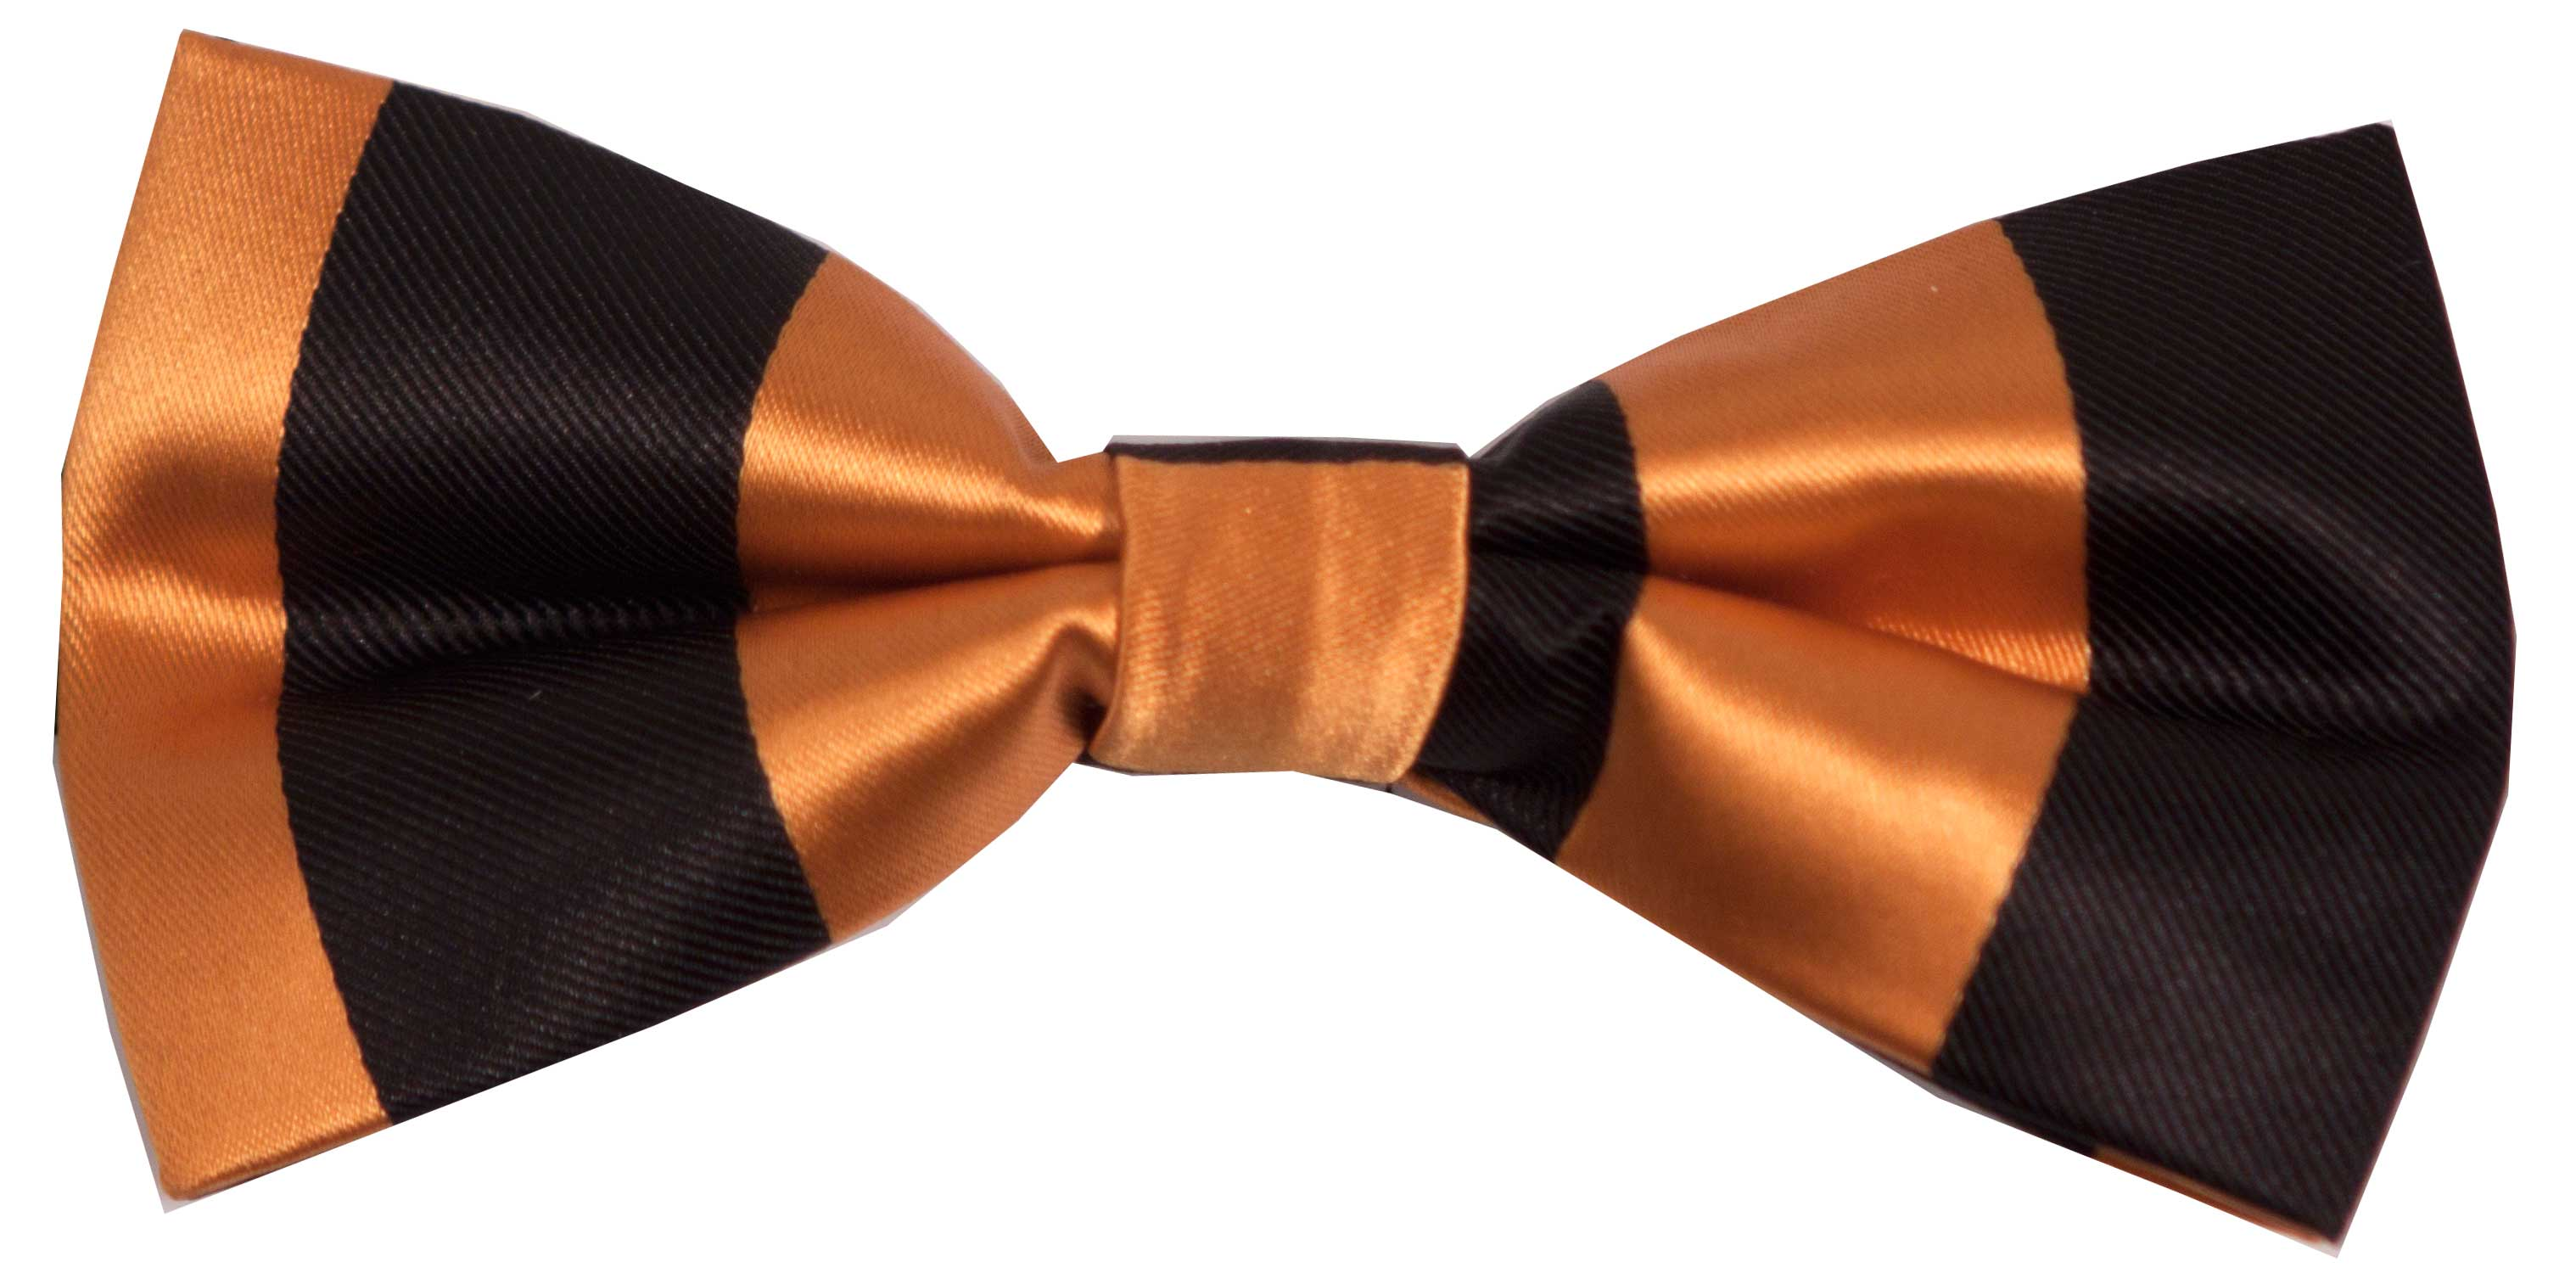 Bow tie (black and orange)